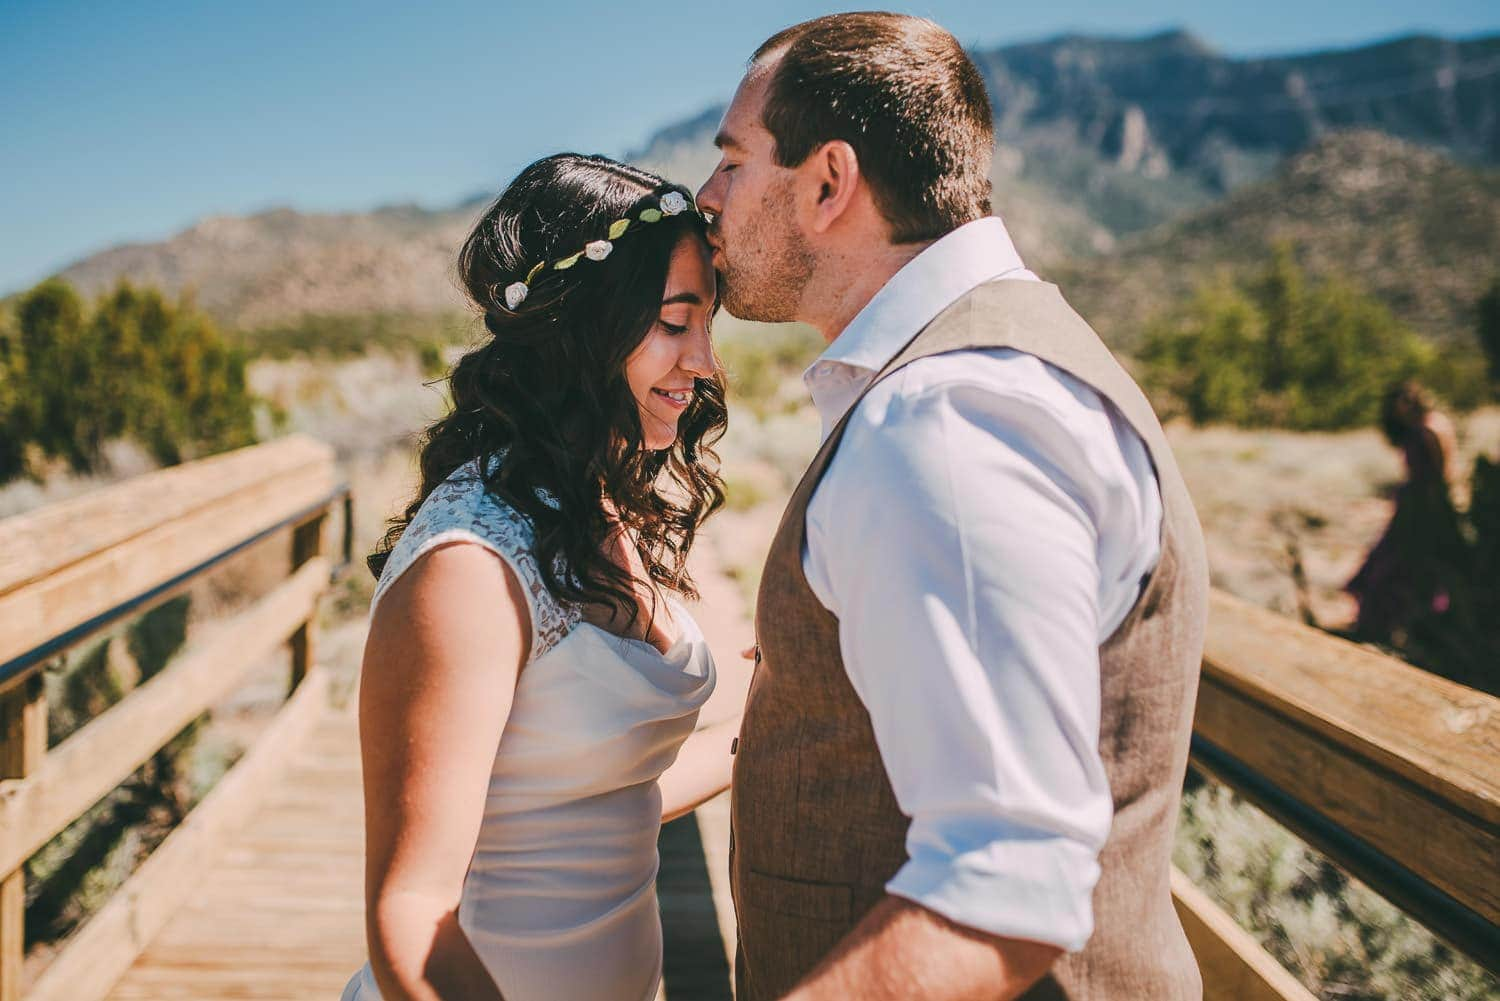 A groom kissing his bride on her forehead. The Sandia mountains are in the background.